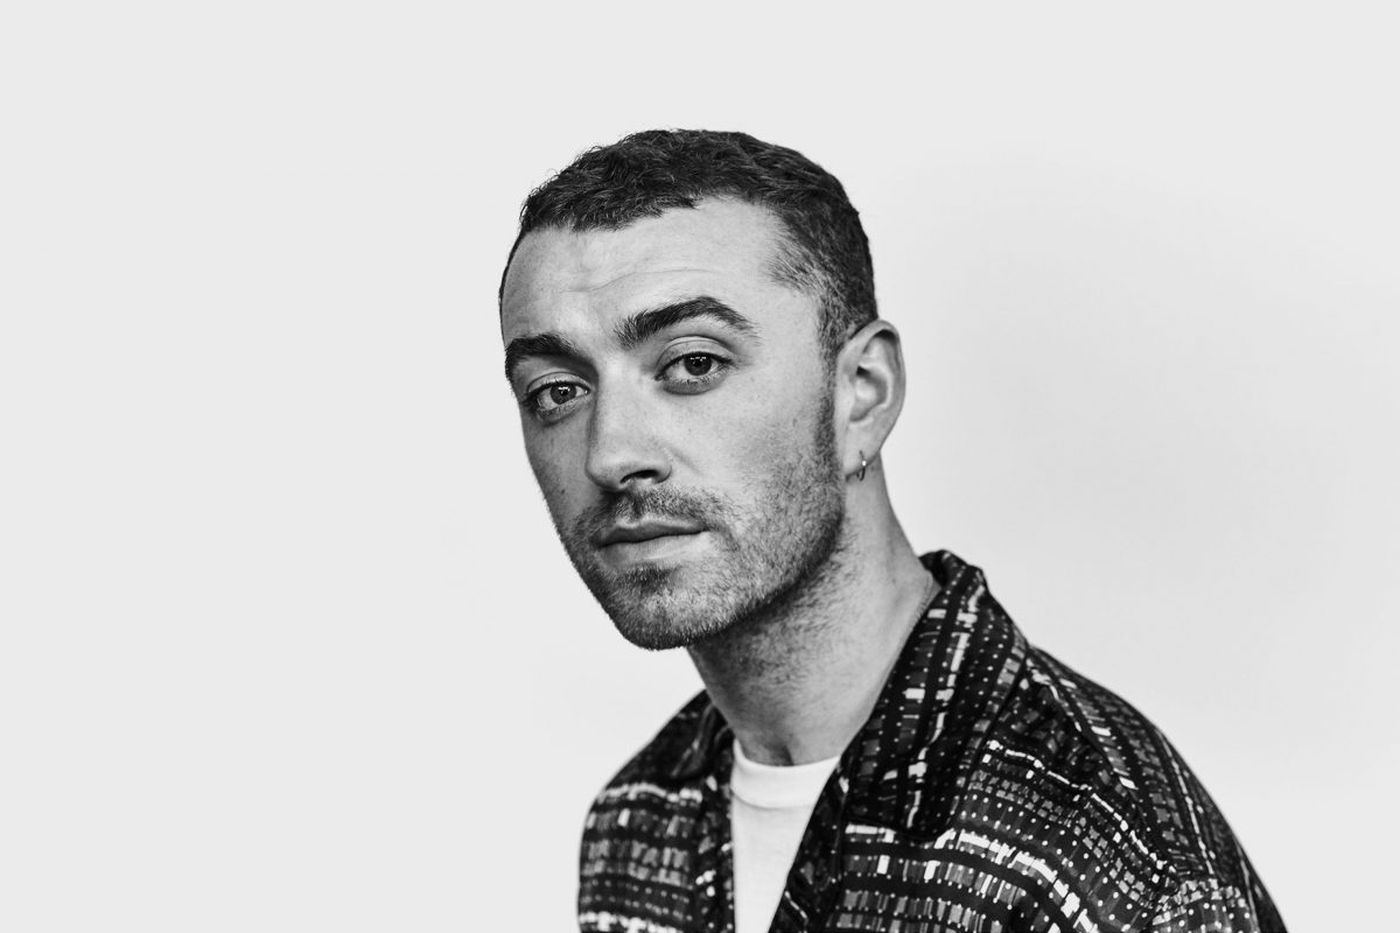 Album reviews: Sam Smith is sad, Gucci Mane is back and Lee Ann Womack sounds better than ever